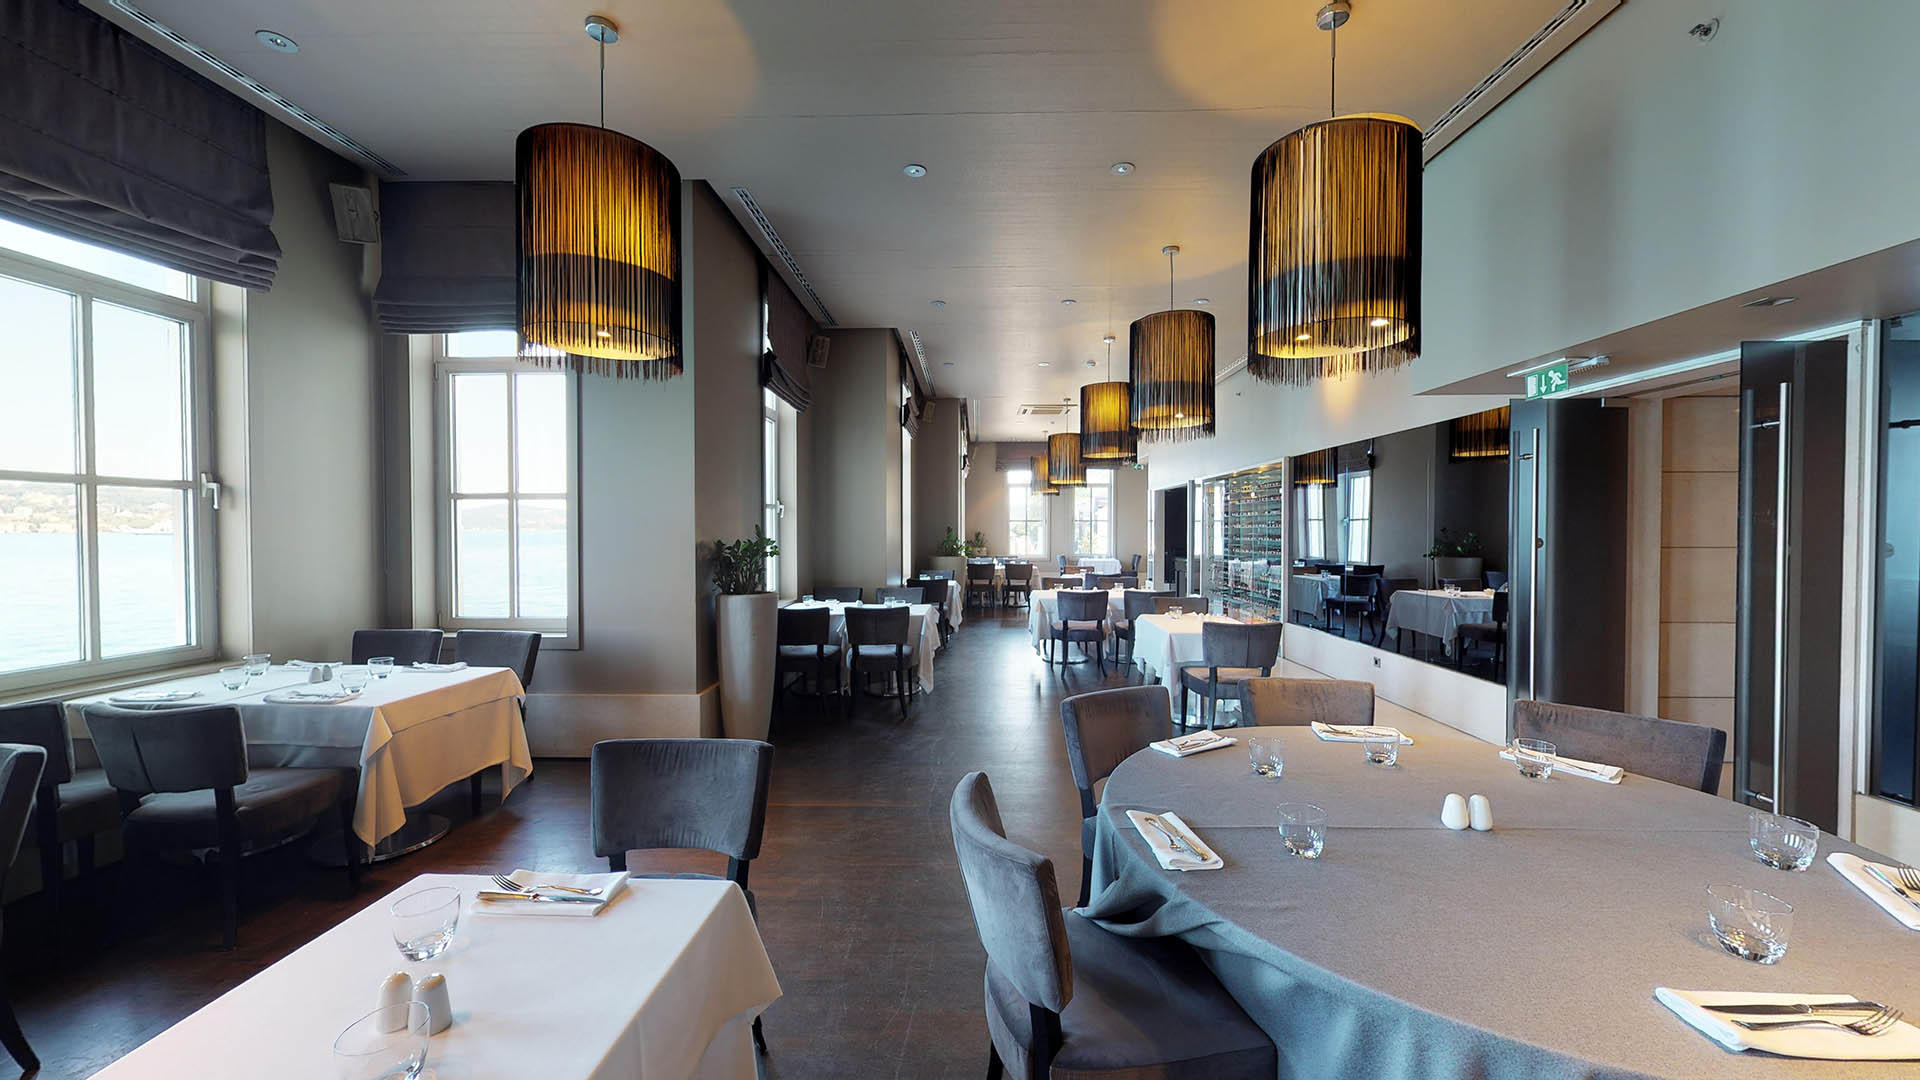 Restaurant at A'jia Hotel Istanbul